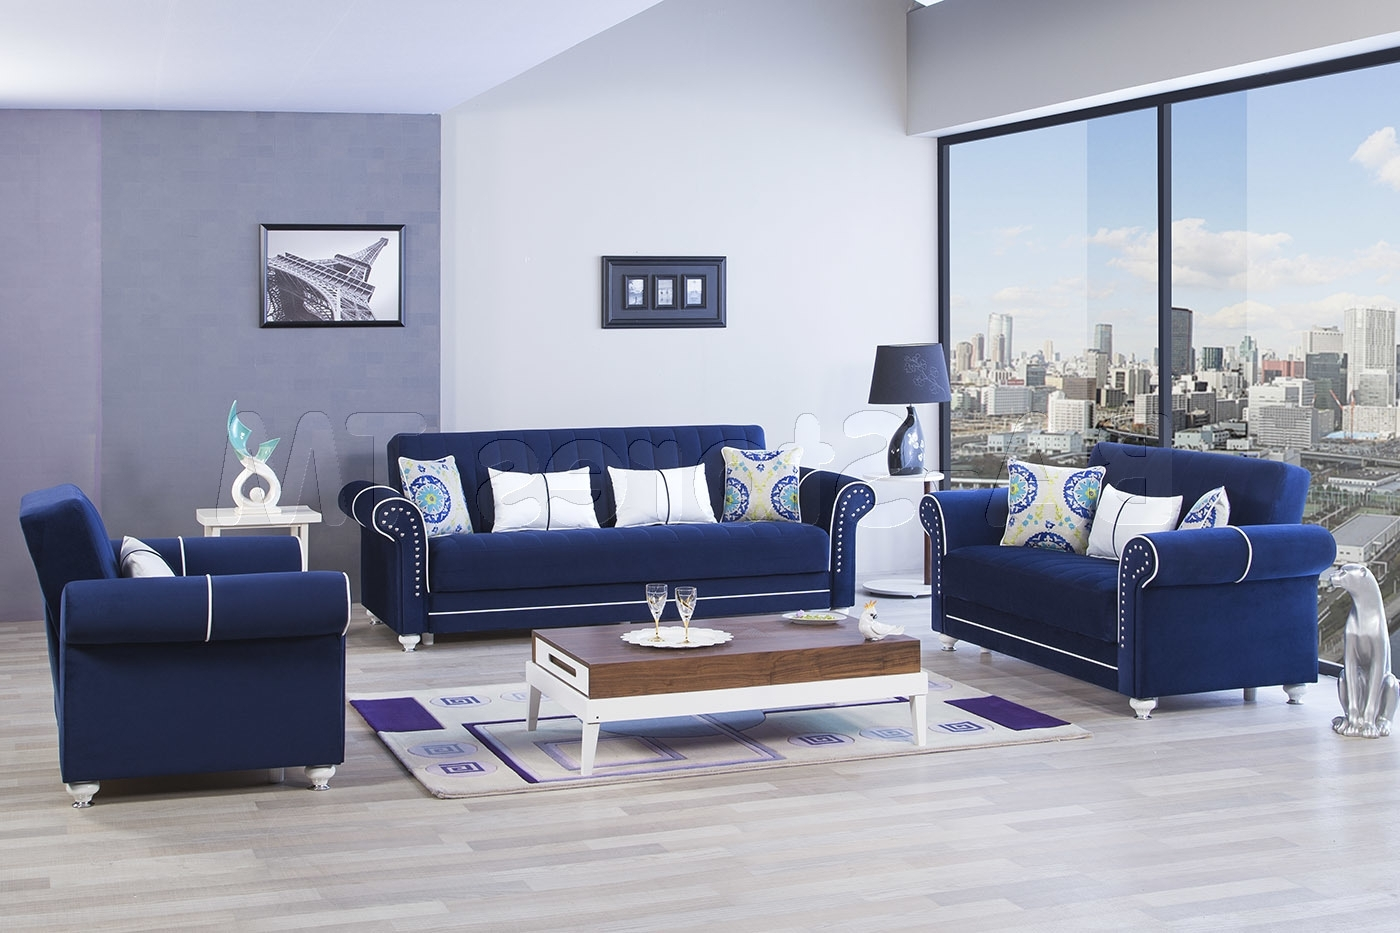 Best And Newest Sale: $249494 Royal Home Sofa Set Riva Dark Blue (3Pc) Sofa With Regard To Dark Blue Sofas (View 5 of 20)